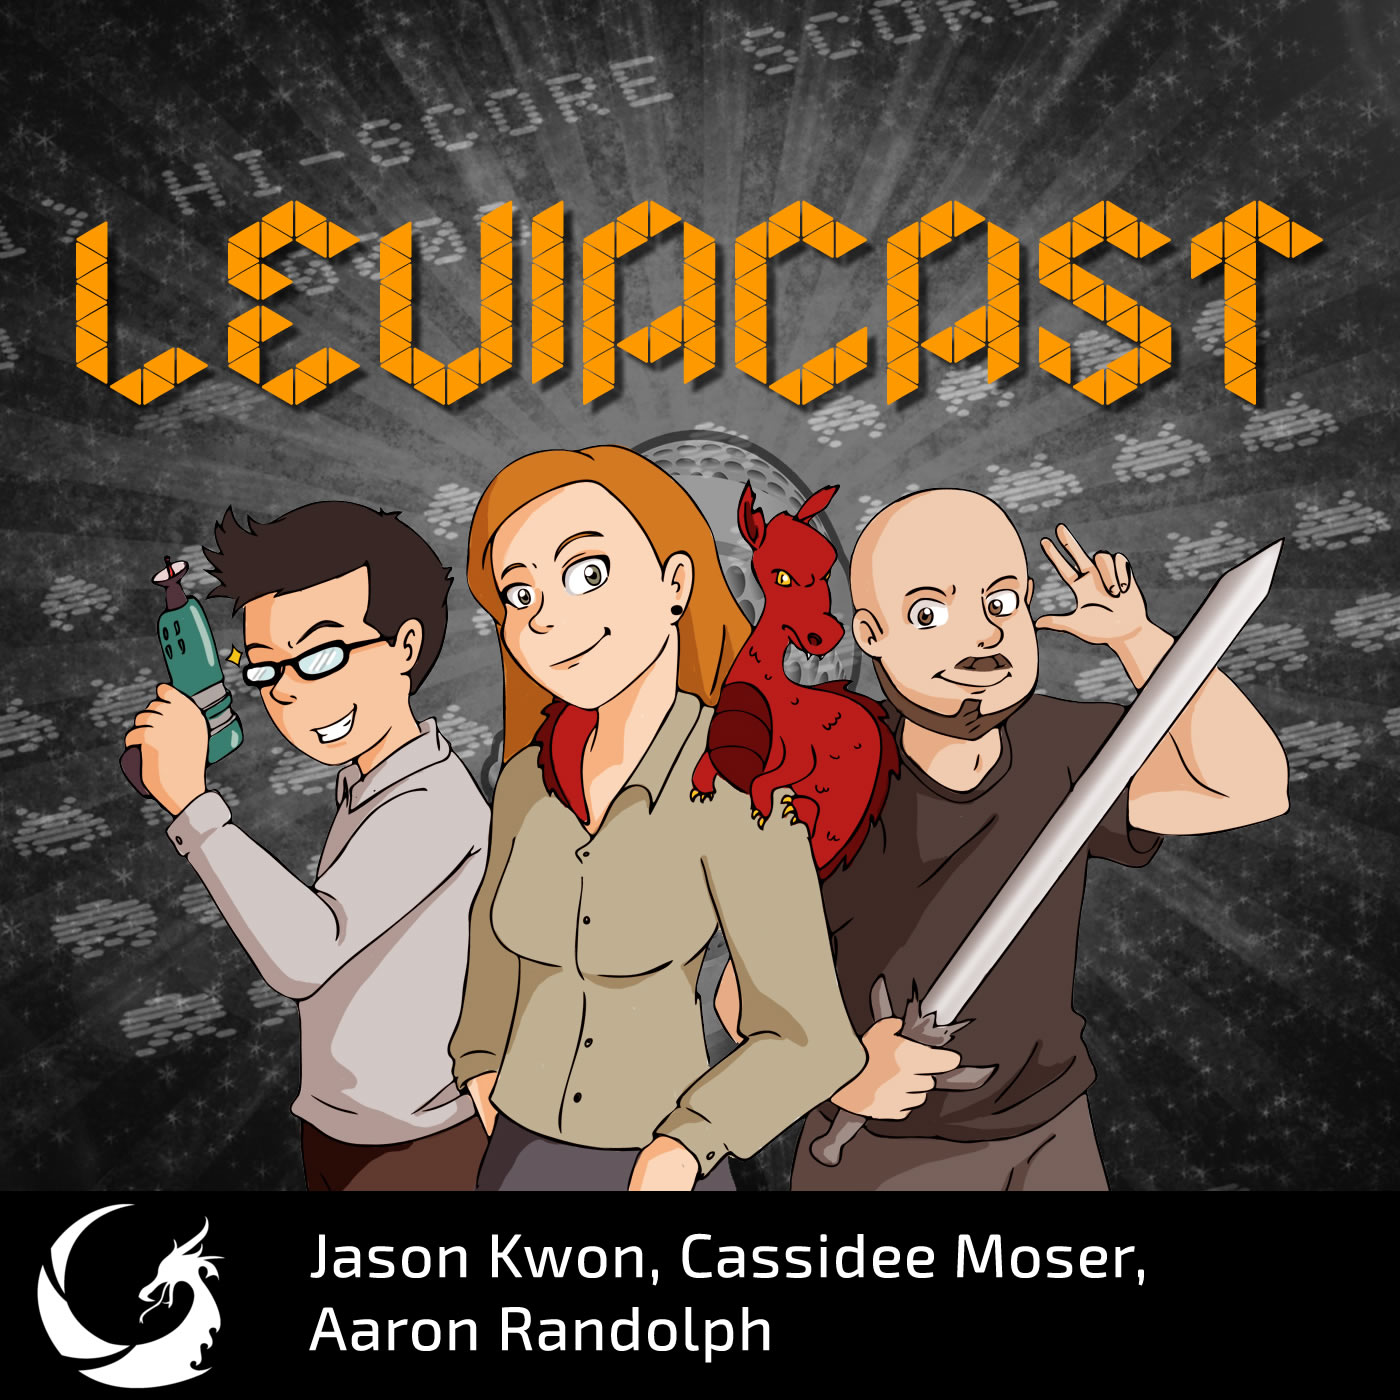 Leviacast Ep. 108: Geralt Used Foreplay!